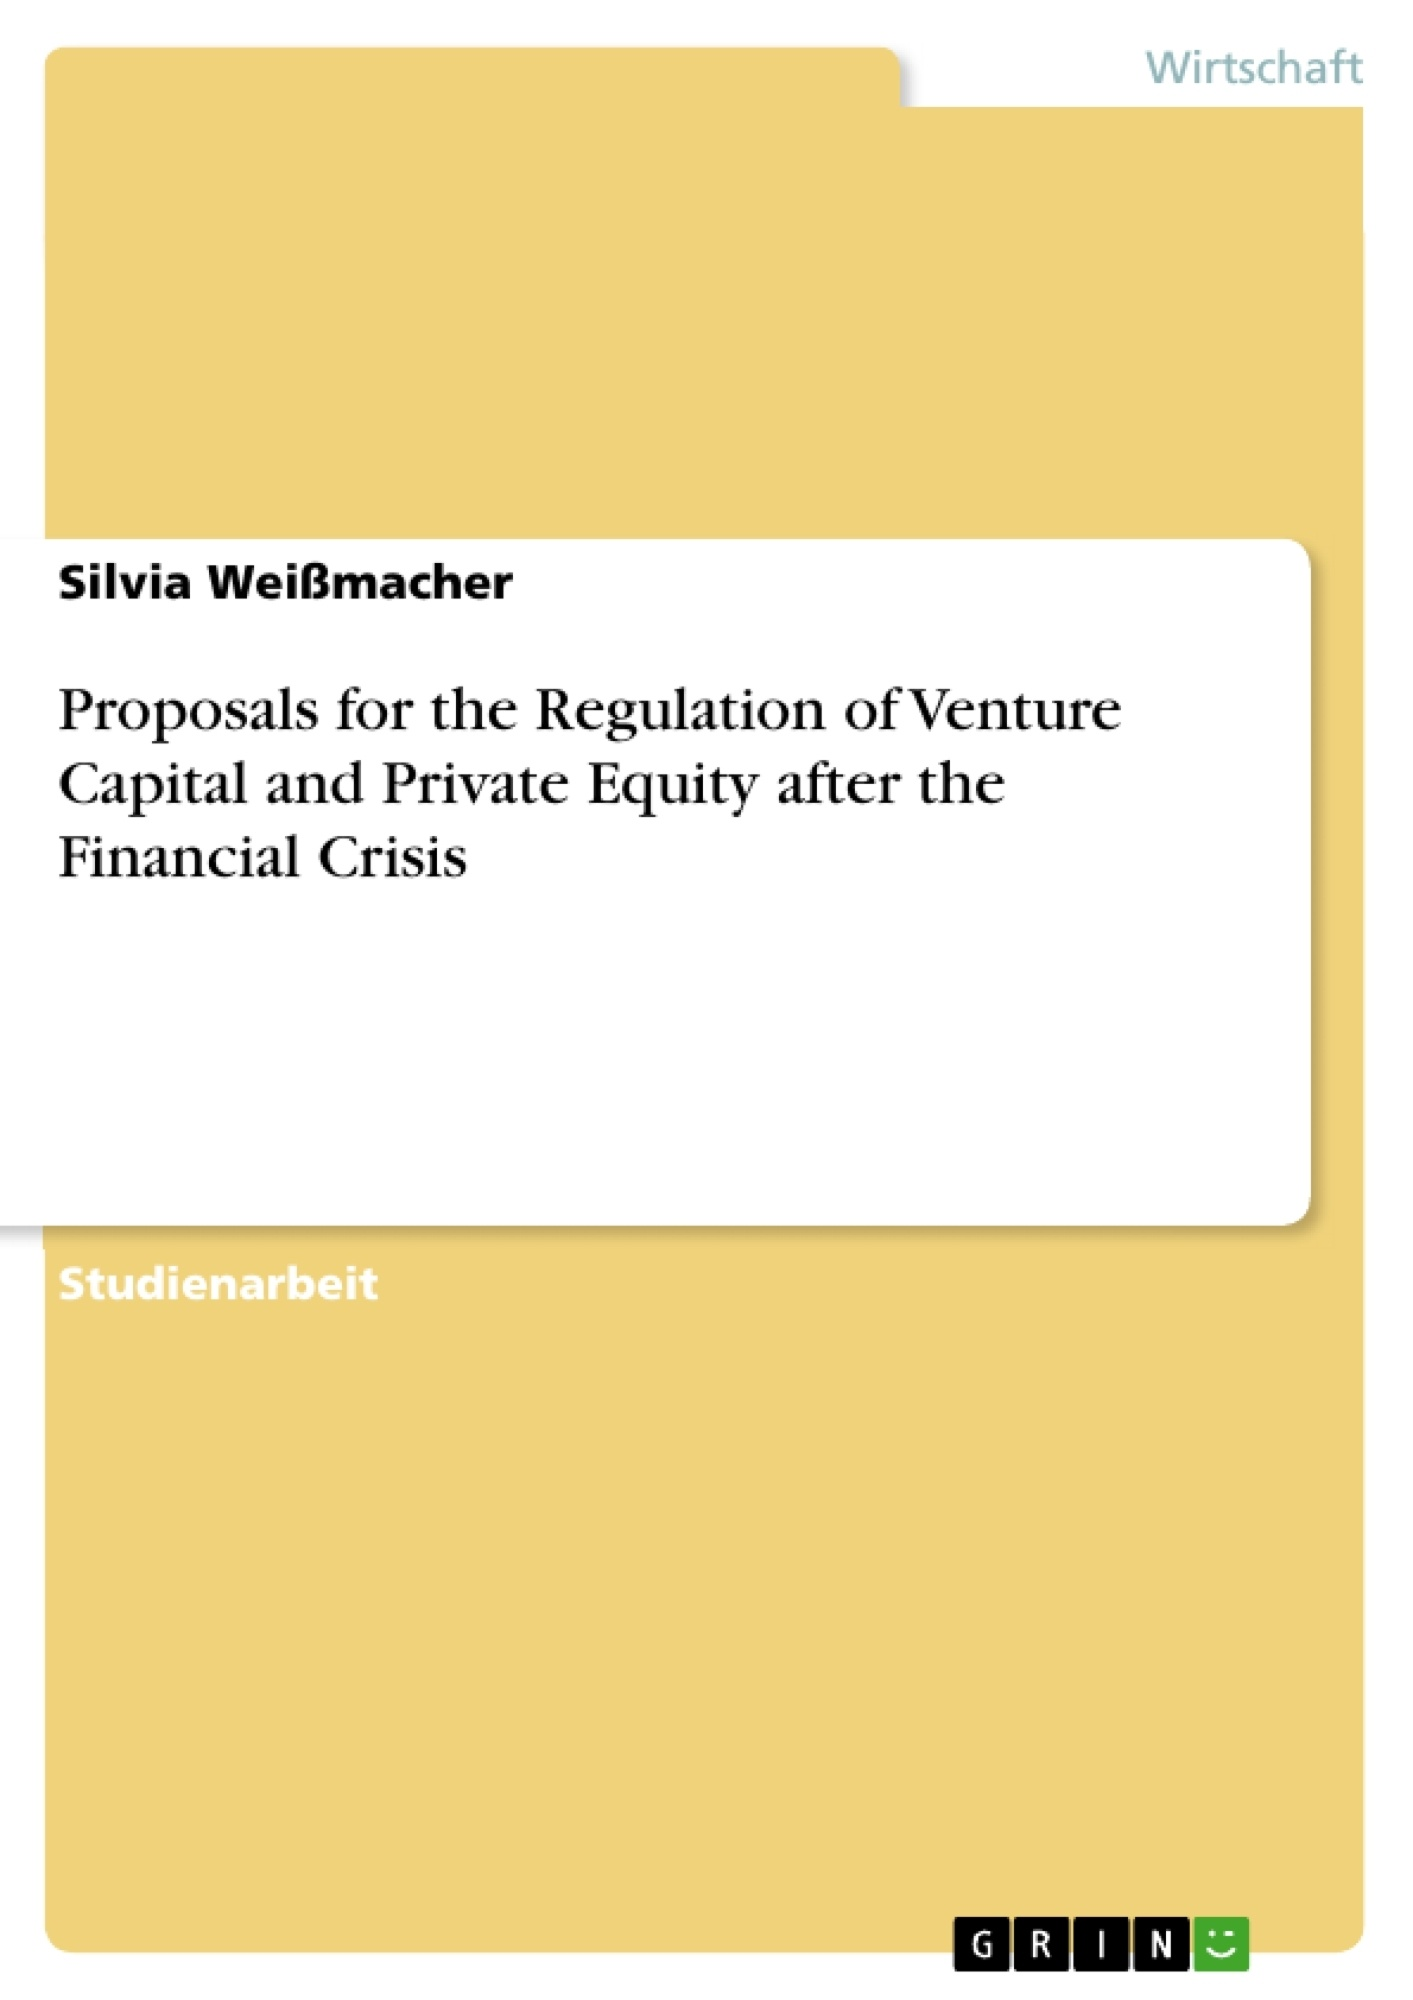 Titel: Proposals for the Regulation of  Venture Capital and Private Equity after the Financial Crisis